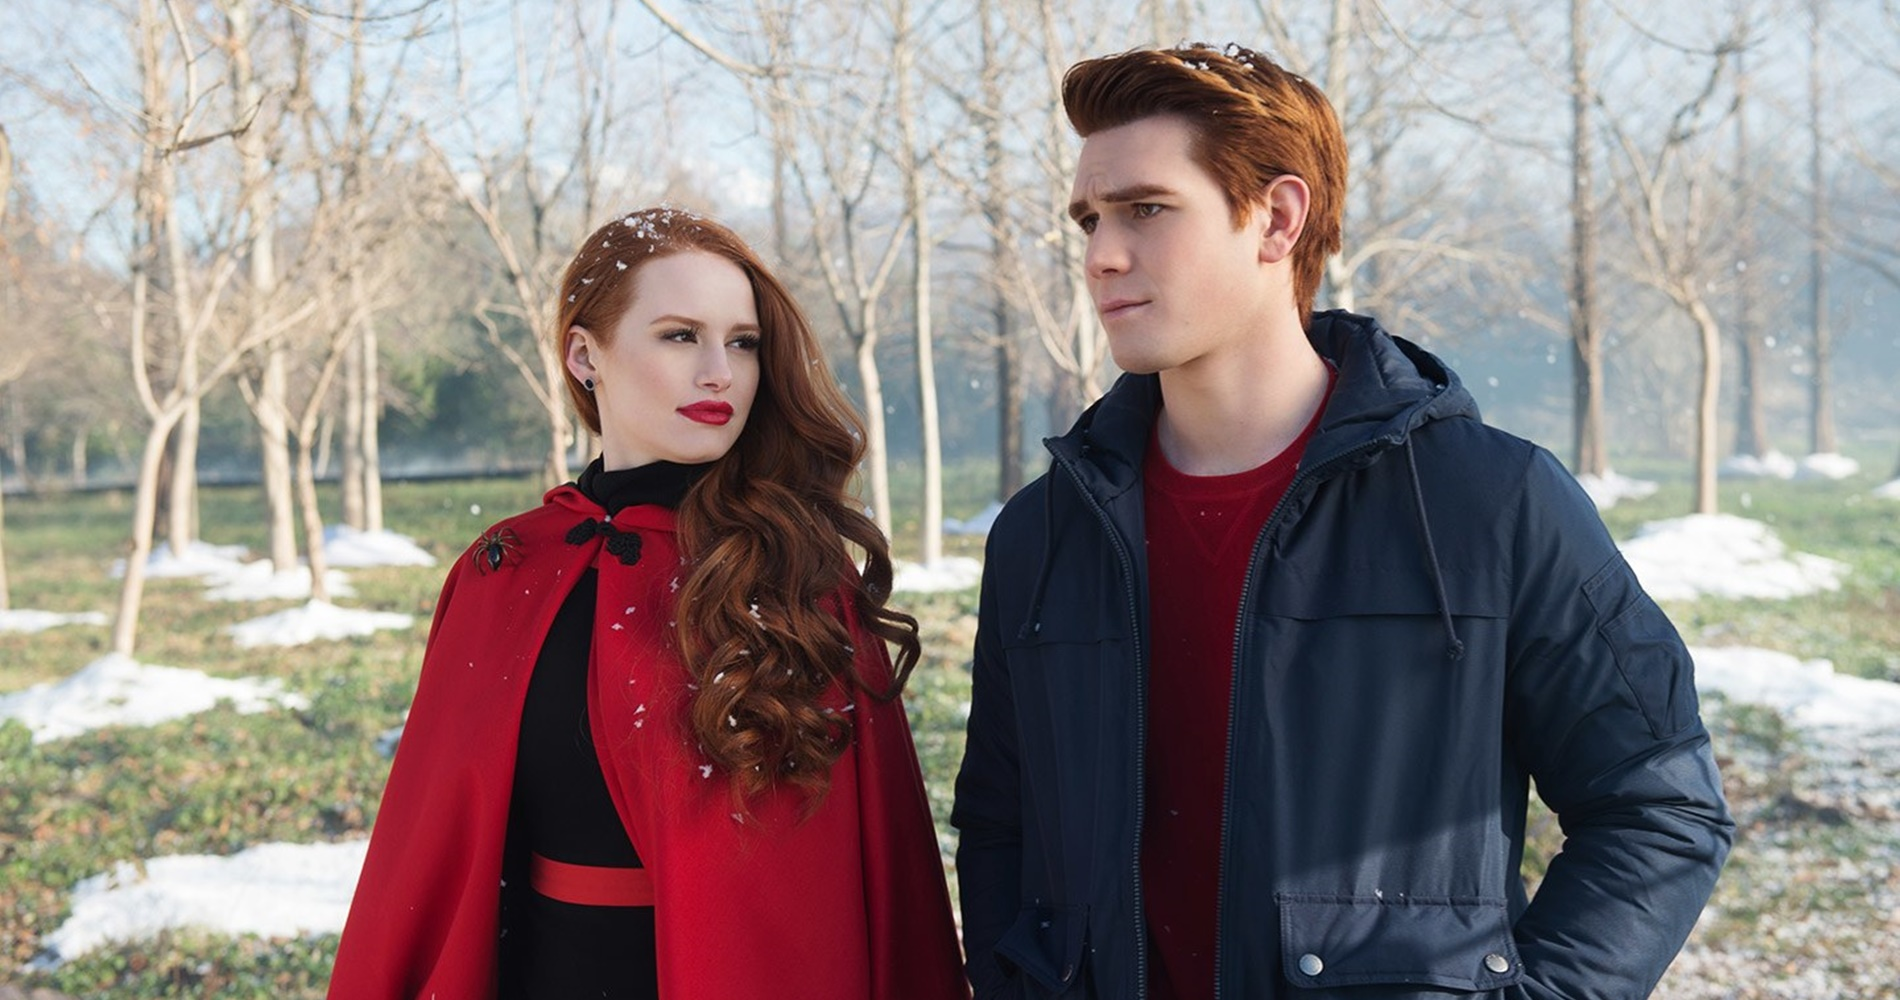 Archie and Cheryl from Riverdale walking outside., pop culture, movies/tv, wdc-slideshow